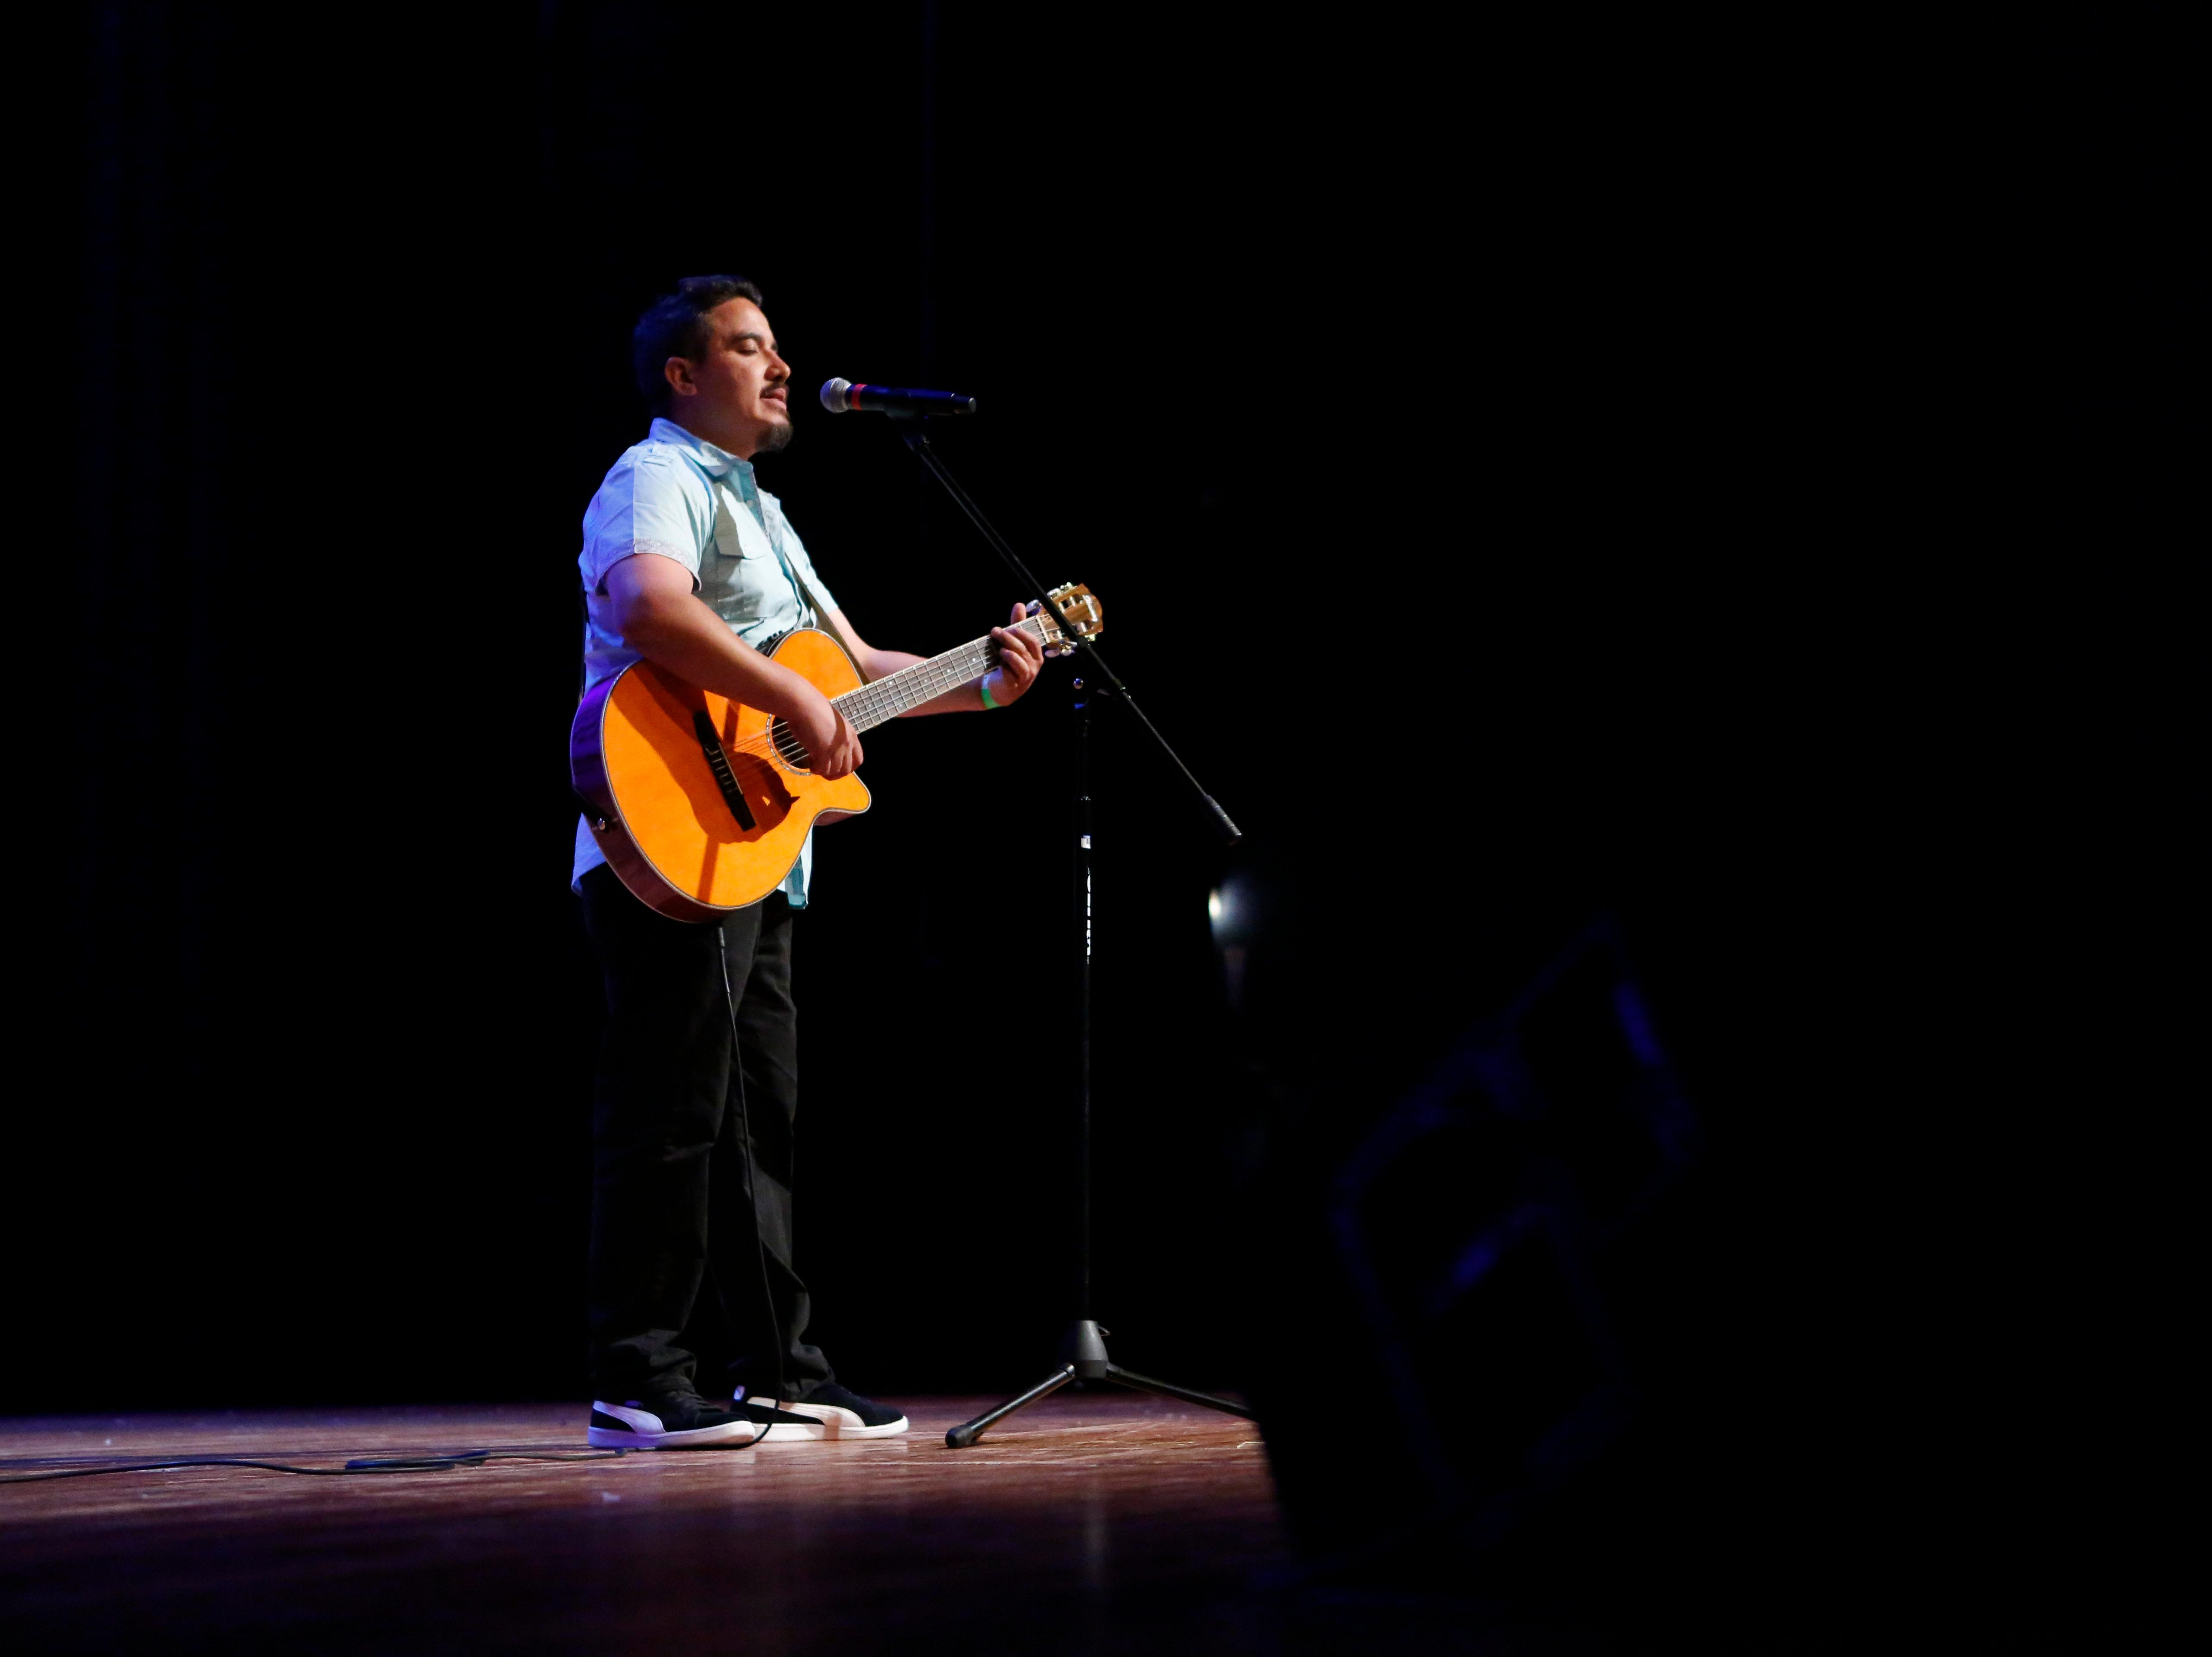 Jesús Brian Messina Sánchez sings as he plays his guitar during the12th annual Noche Bohemia at Sherwood Hall on Saturday, April 27, 2019 in Salinas, Calif.